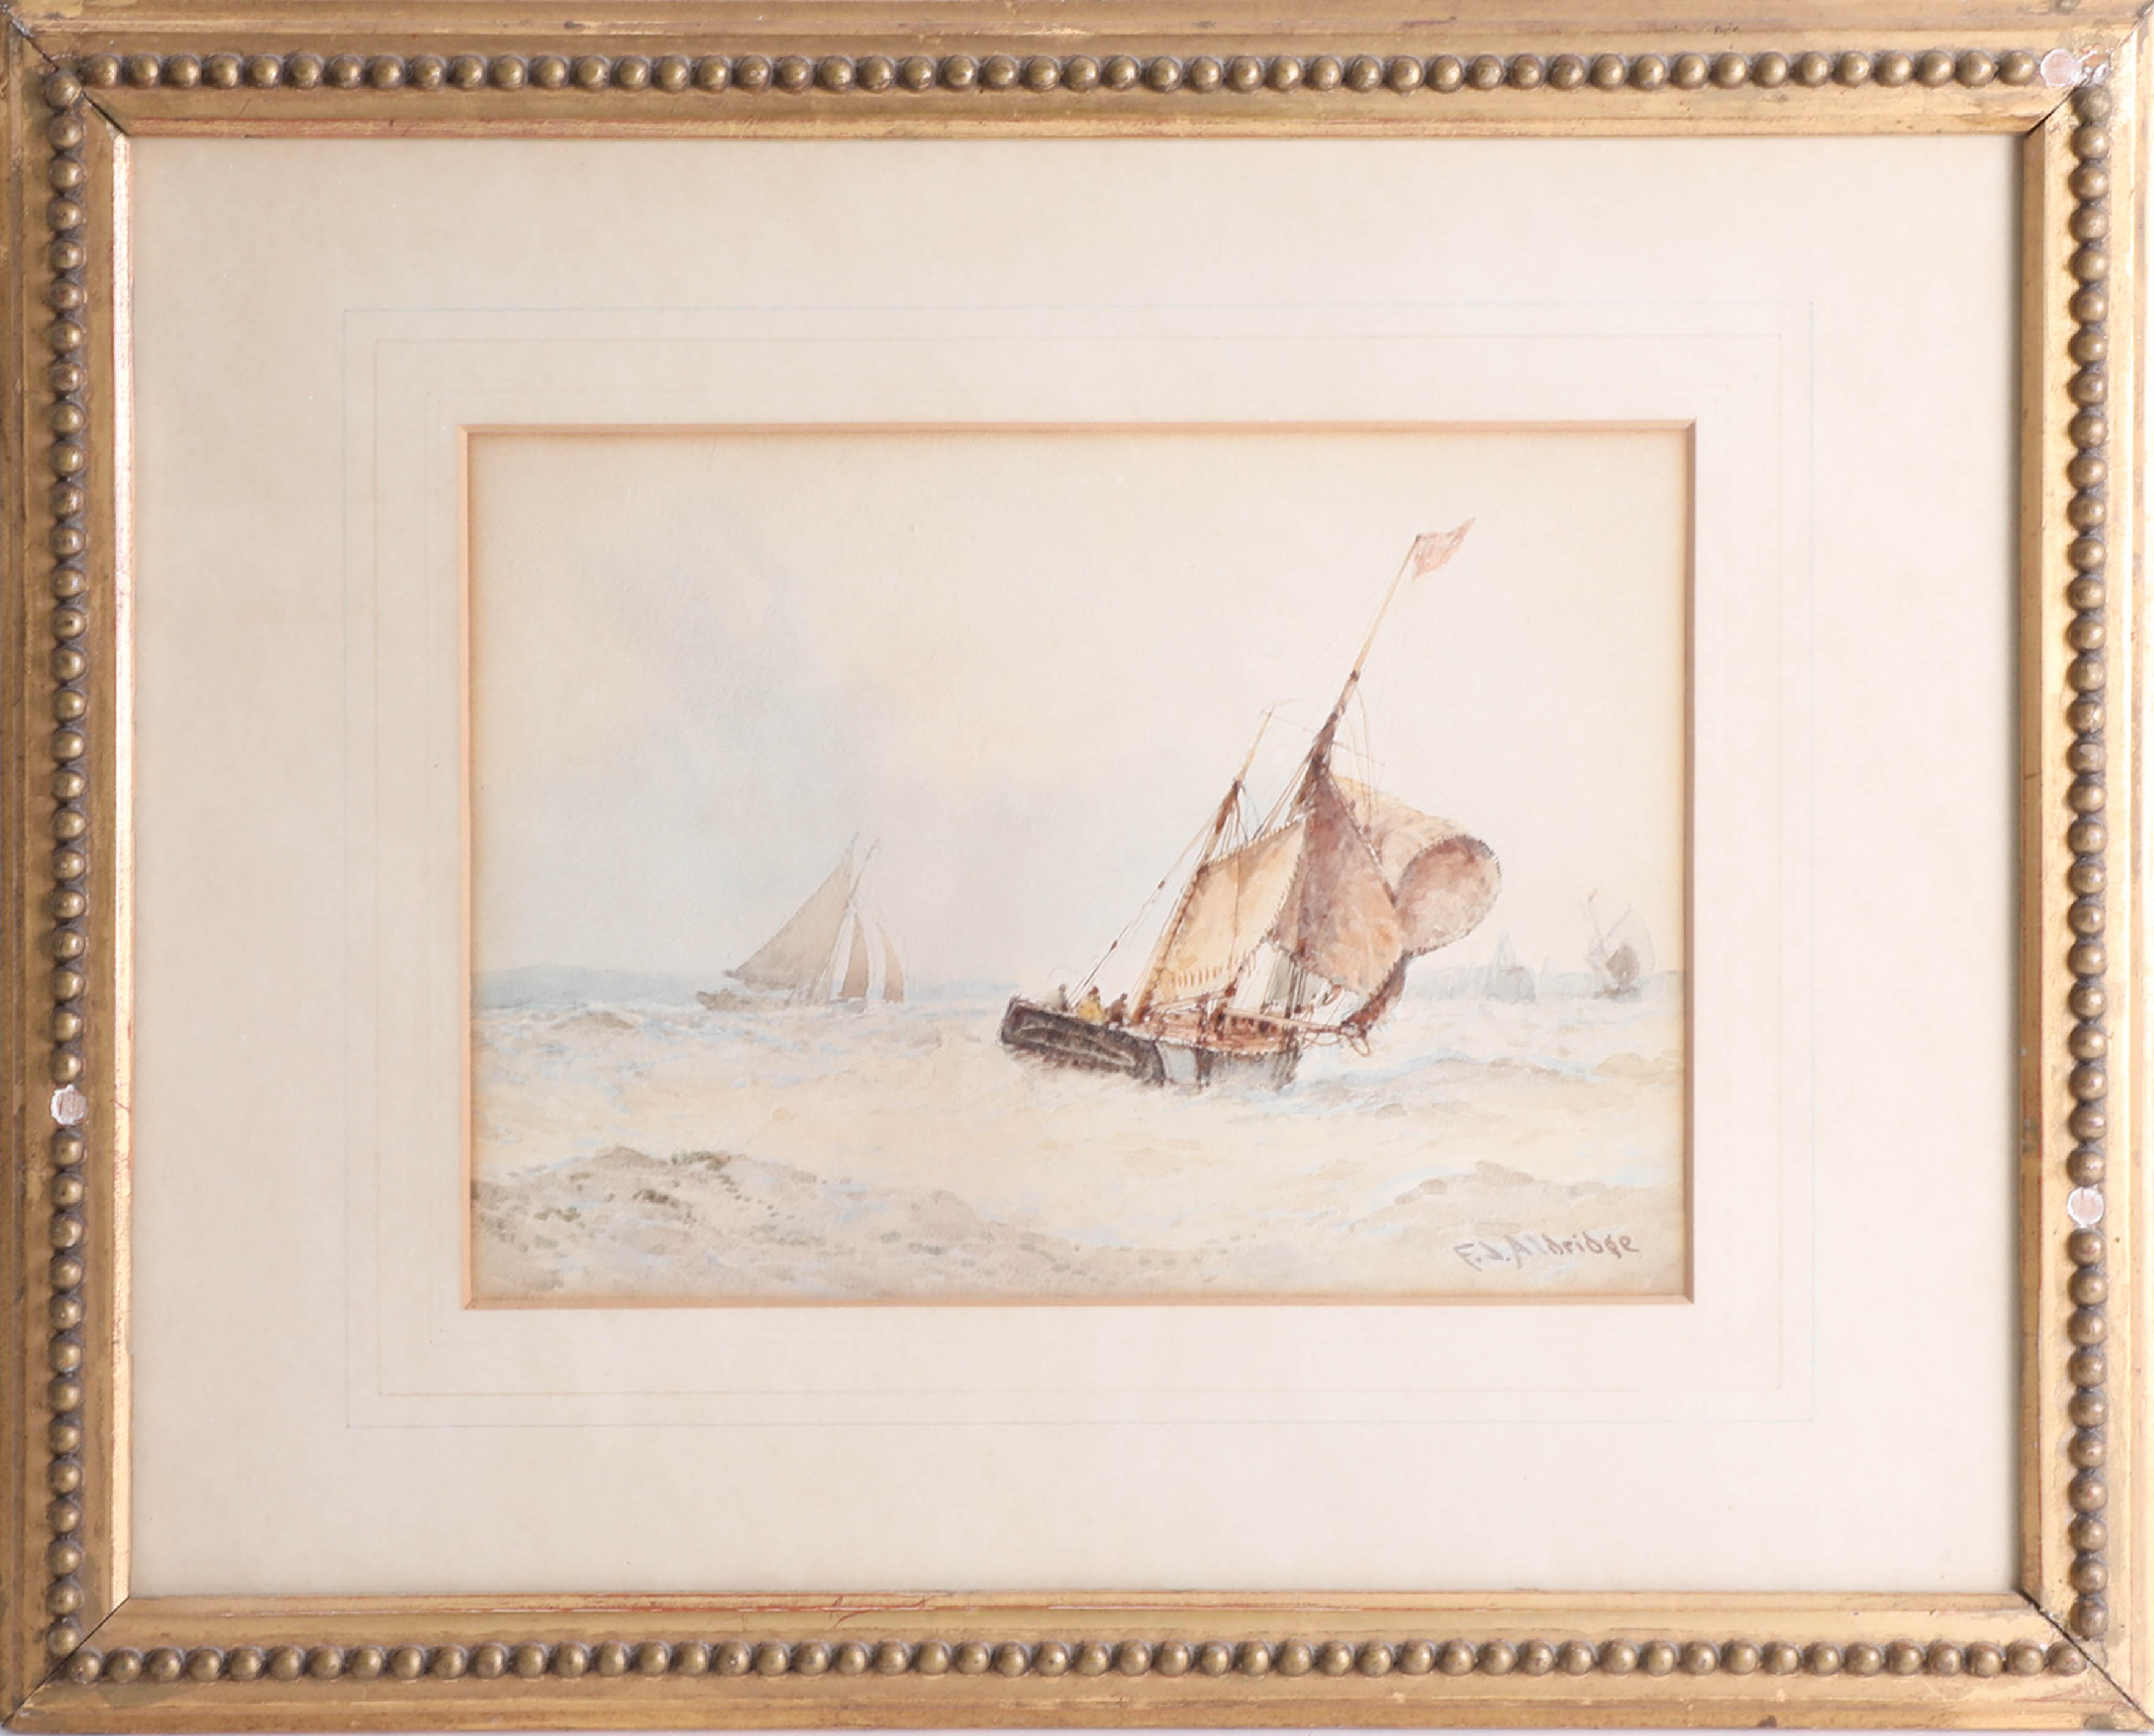 Lot 040 - F.J. Aldridge (1850-1933) 19th/20th century signed marine watercolour, 19cm x 26cm together with